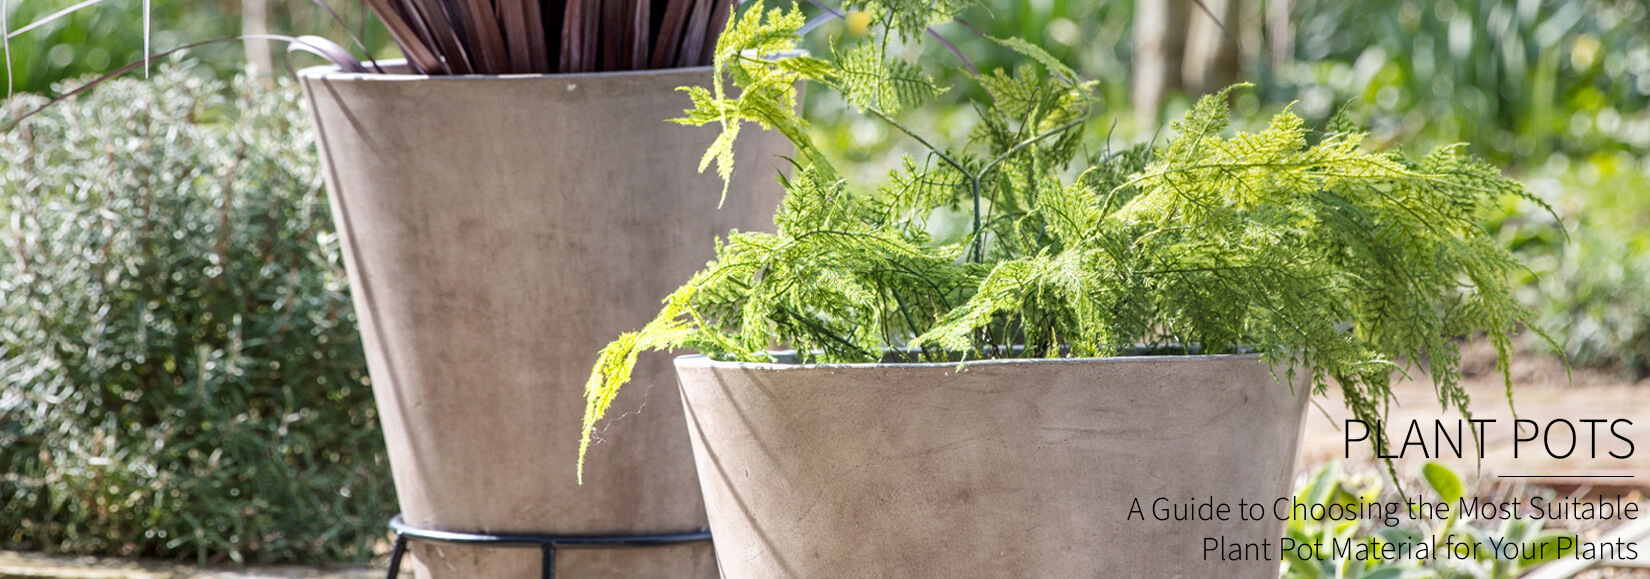 Choosing the Best Material for Your Plant Pots & Styles to Try in Your Home